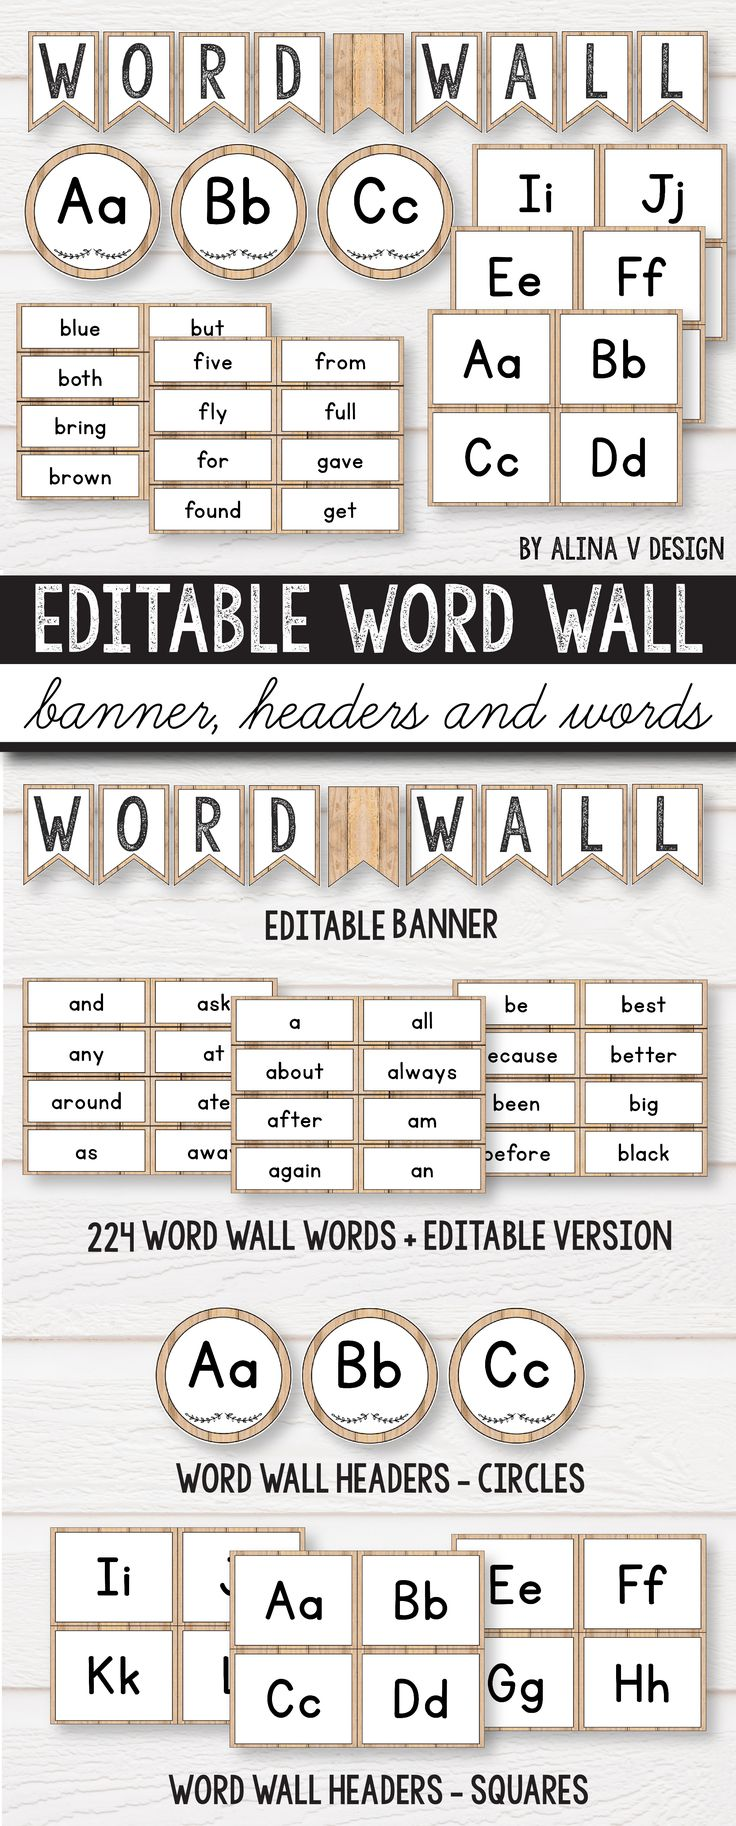 Word Wall Letters Gorgeous Best 25 Word Wall Headers Ideas On Pinterest  Word Wall Letters Inspiration